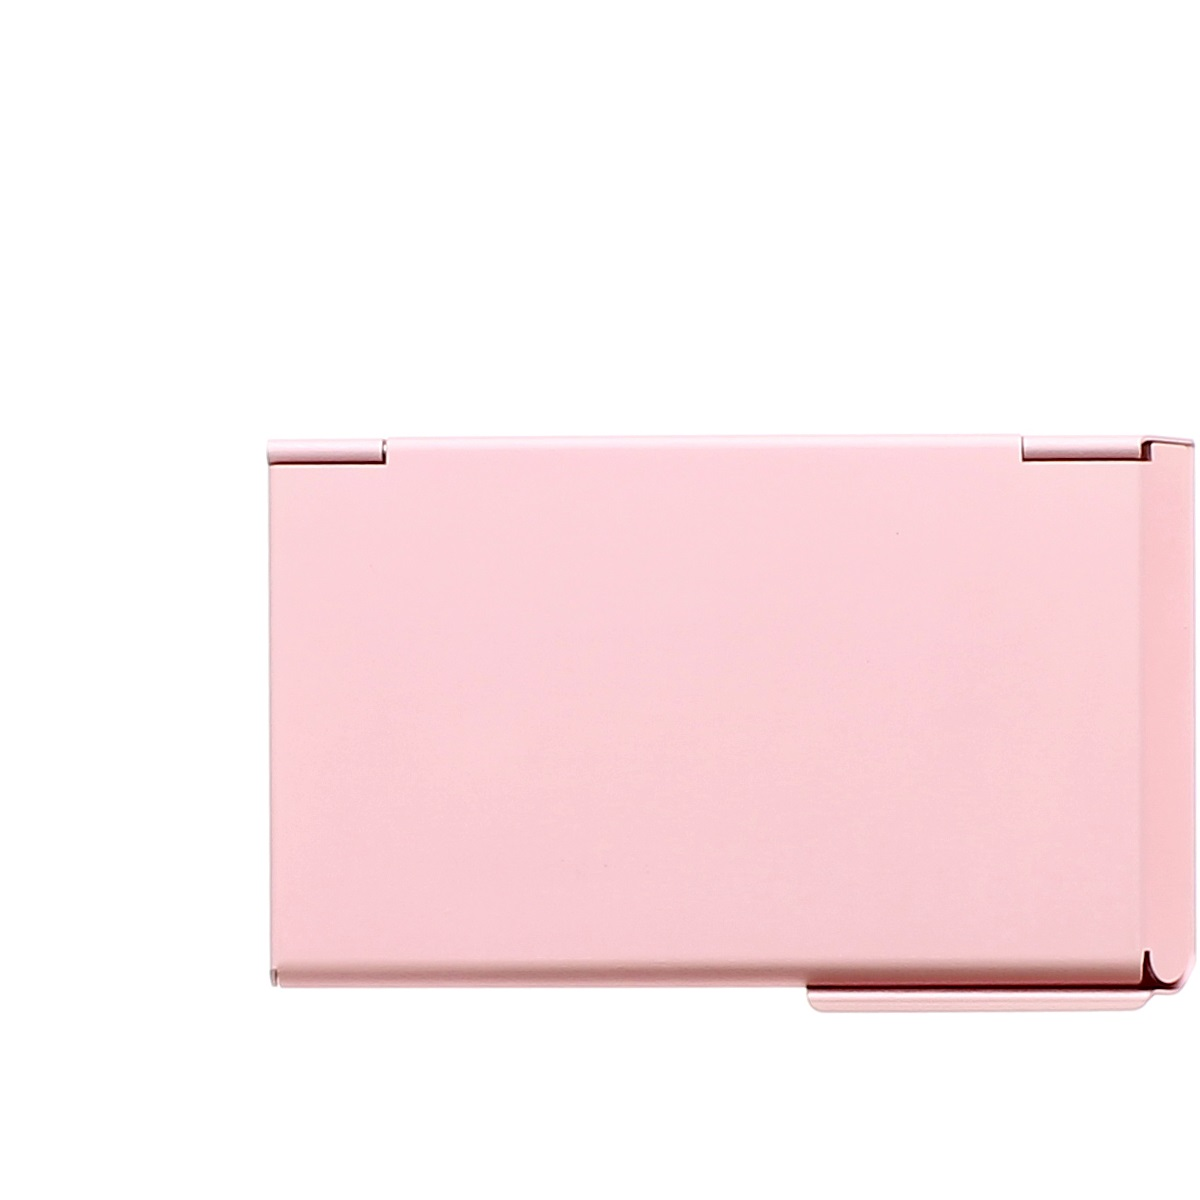 OGON Aluminum Business card holder One Touch - Pink